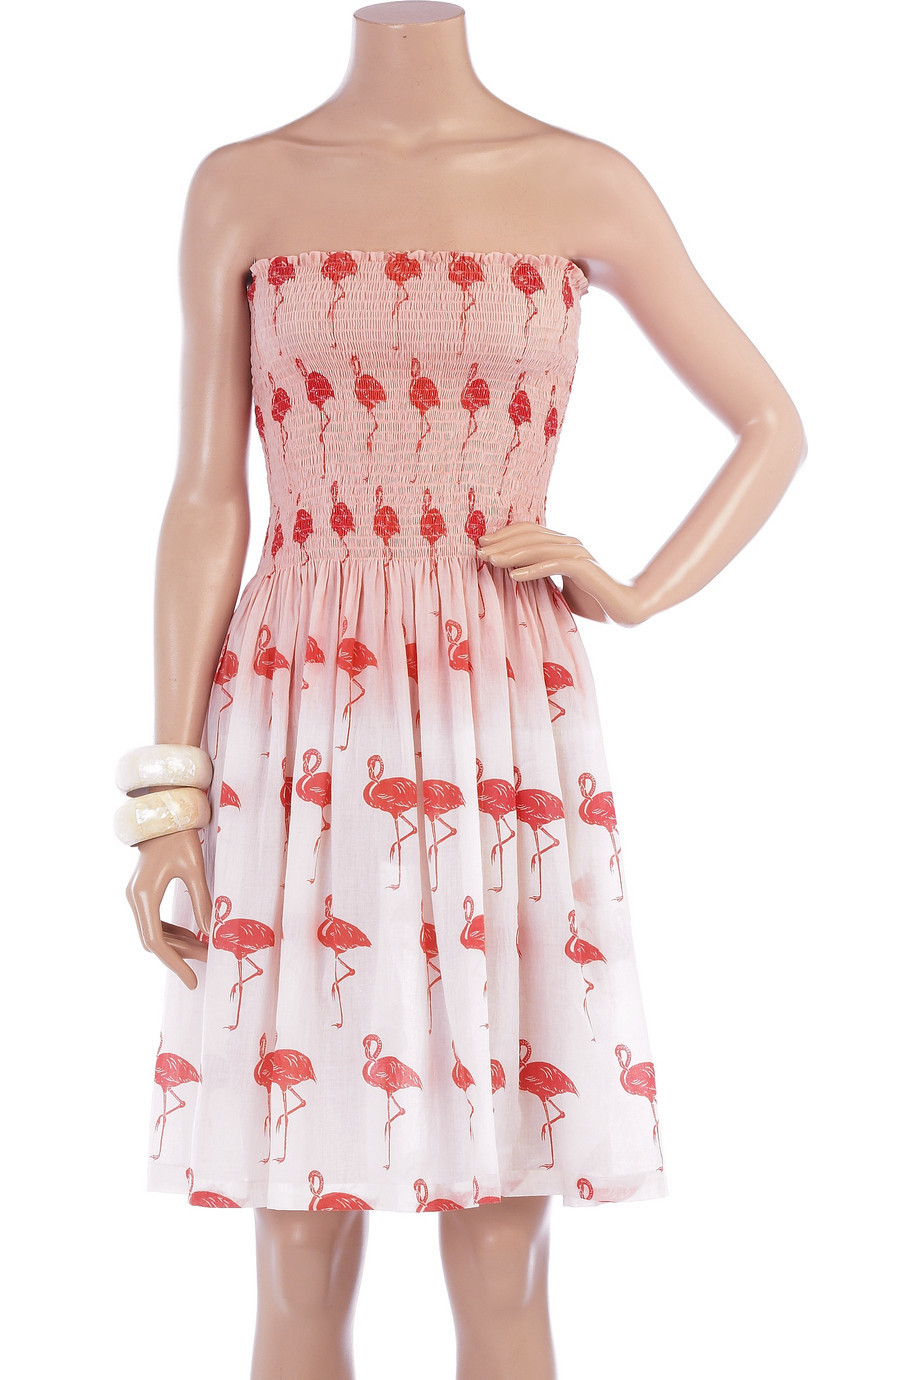 Tara Matthews Flamingo print dress | NET-A-PORTER.COM from net-a-porter.com